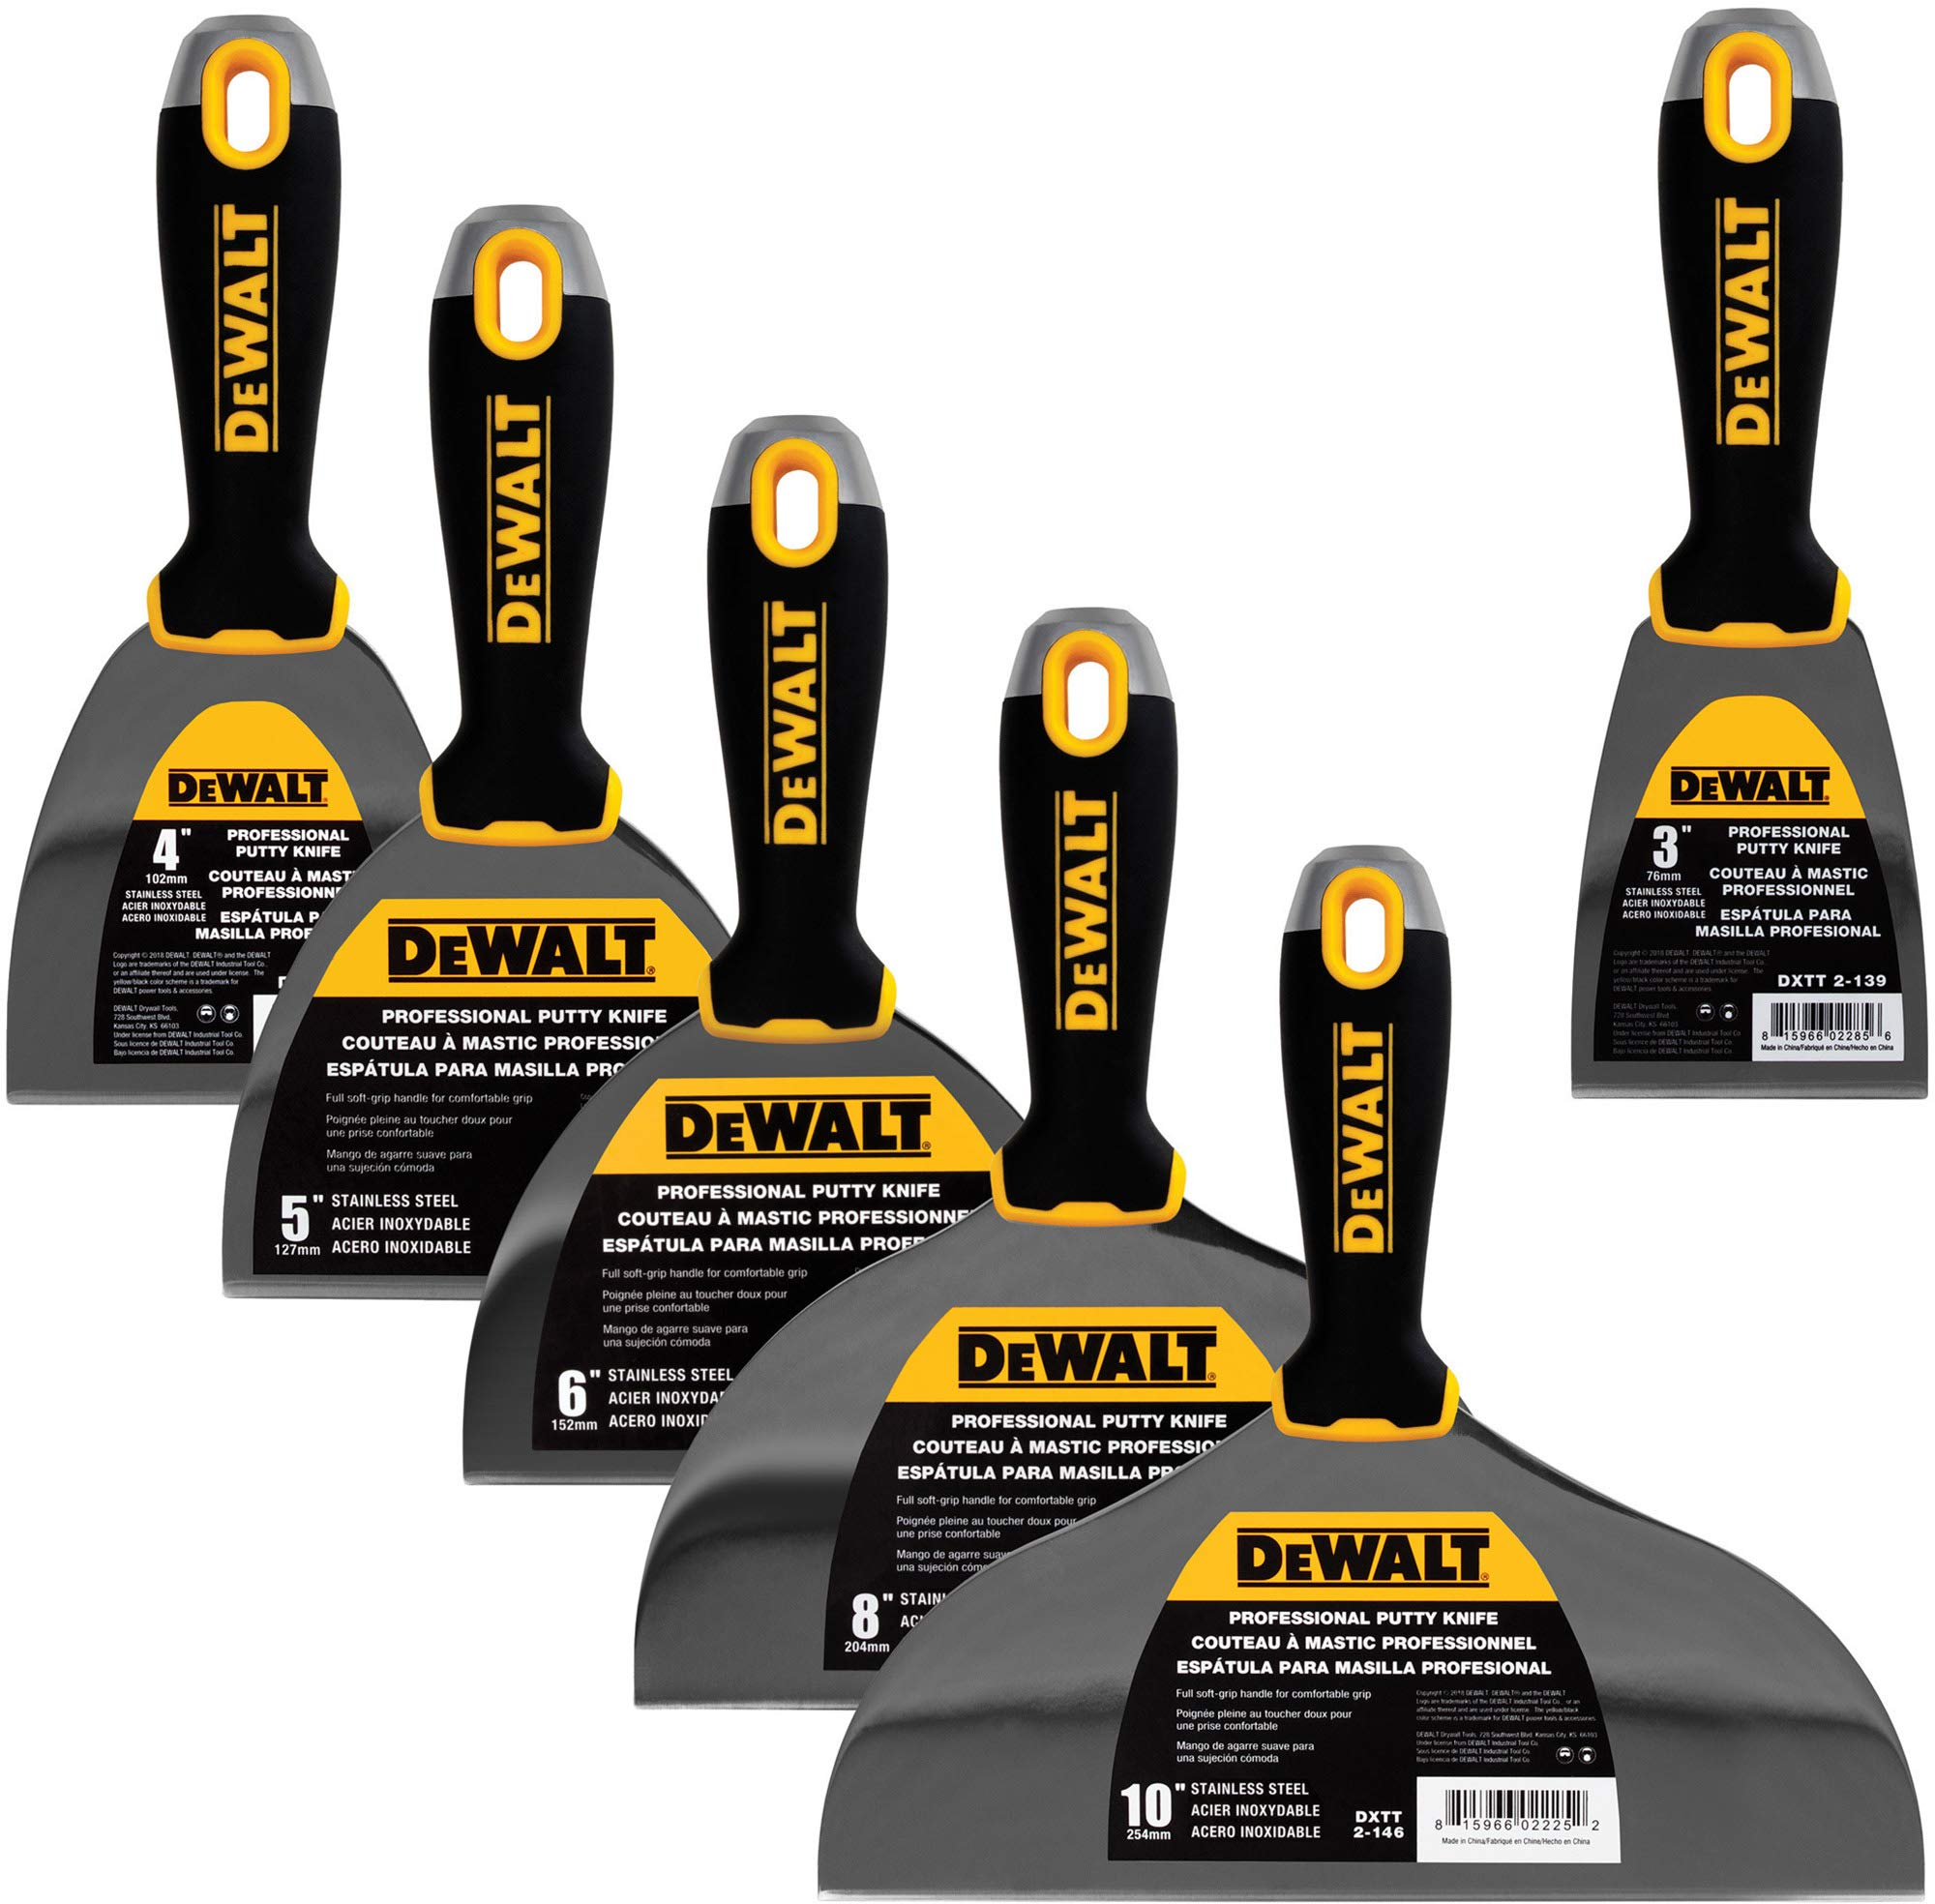 DEWALT DELUXE Stainless Steel Putty Knife Set | 4/5/6/8/10-Inch + 3-Inch Included for FREE | Soft Grip Handles | DXTT-3-139 by DEWALT